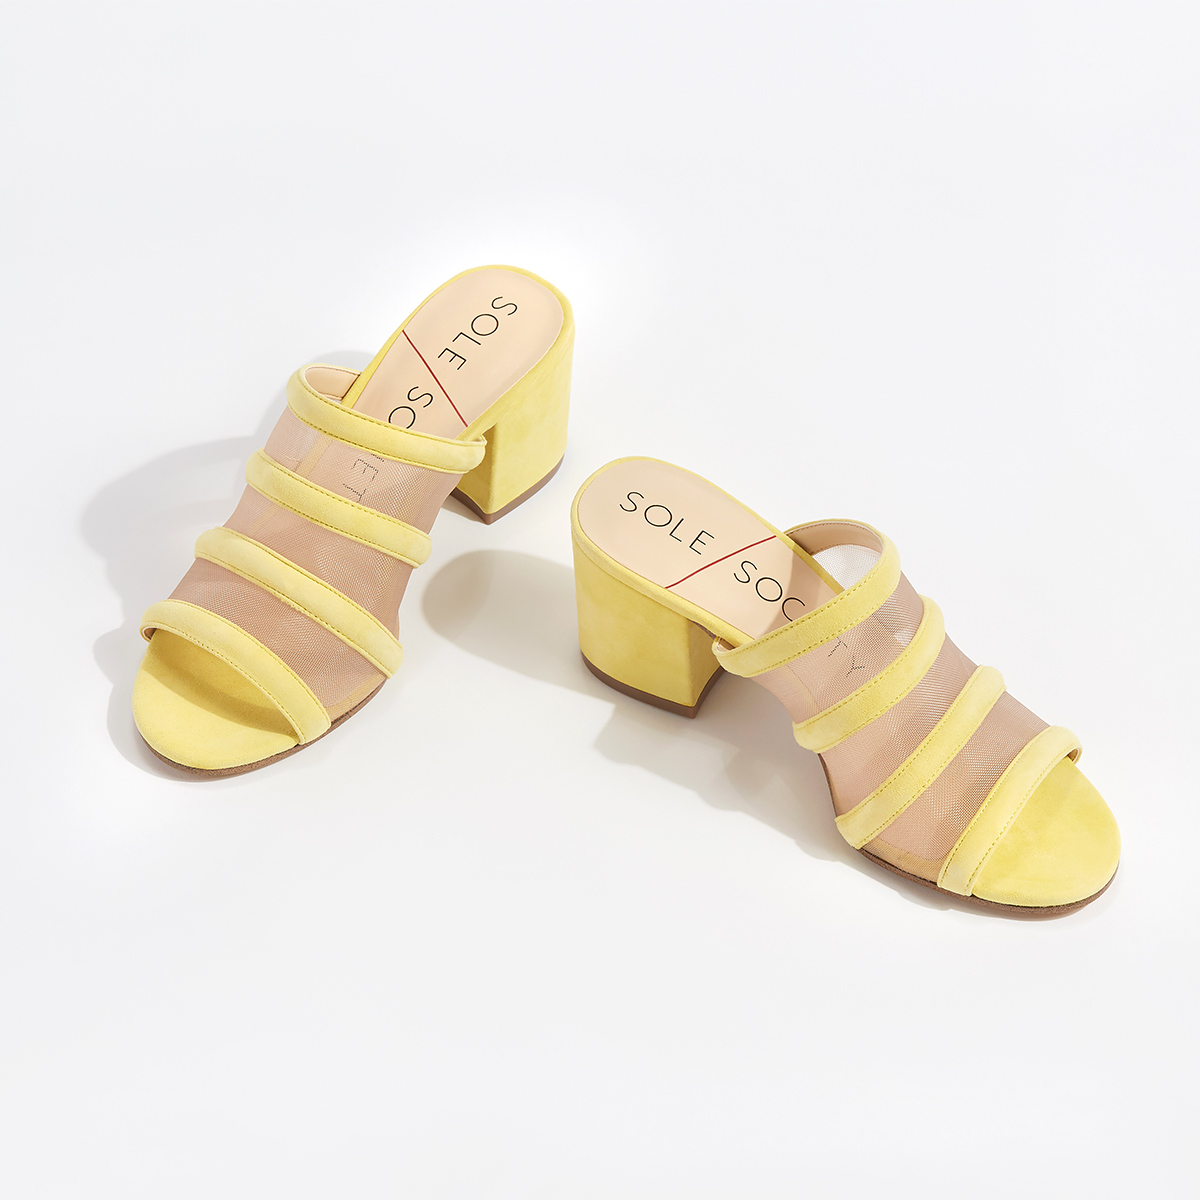 A pair of bright yellow heels with sheer panels sitting on a white background.